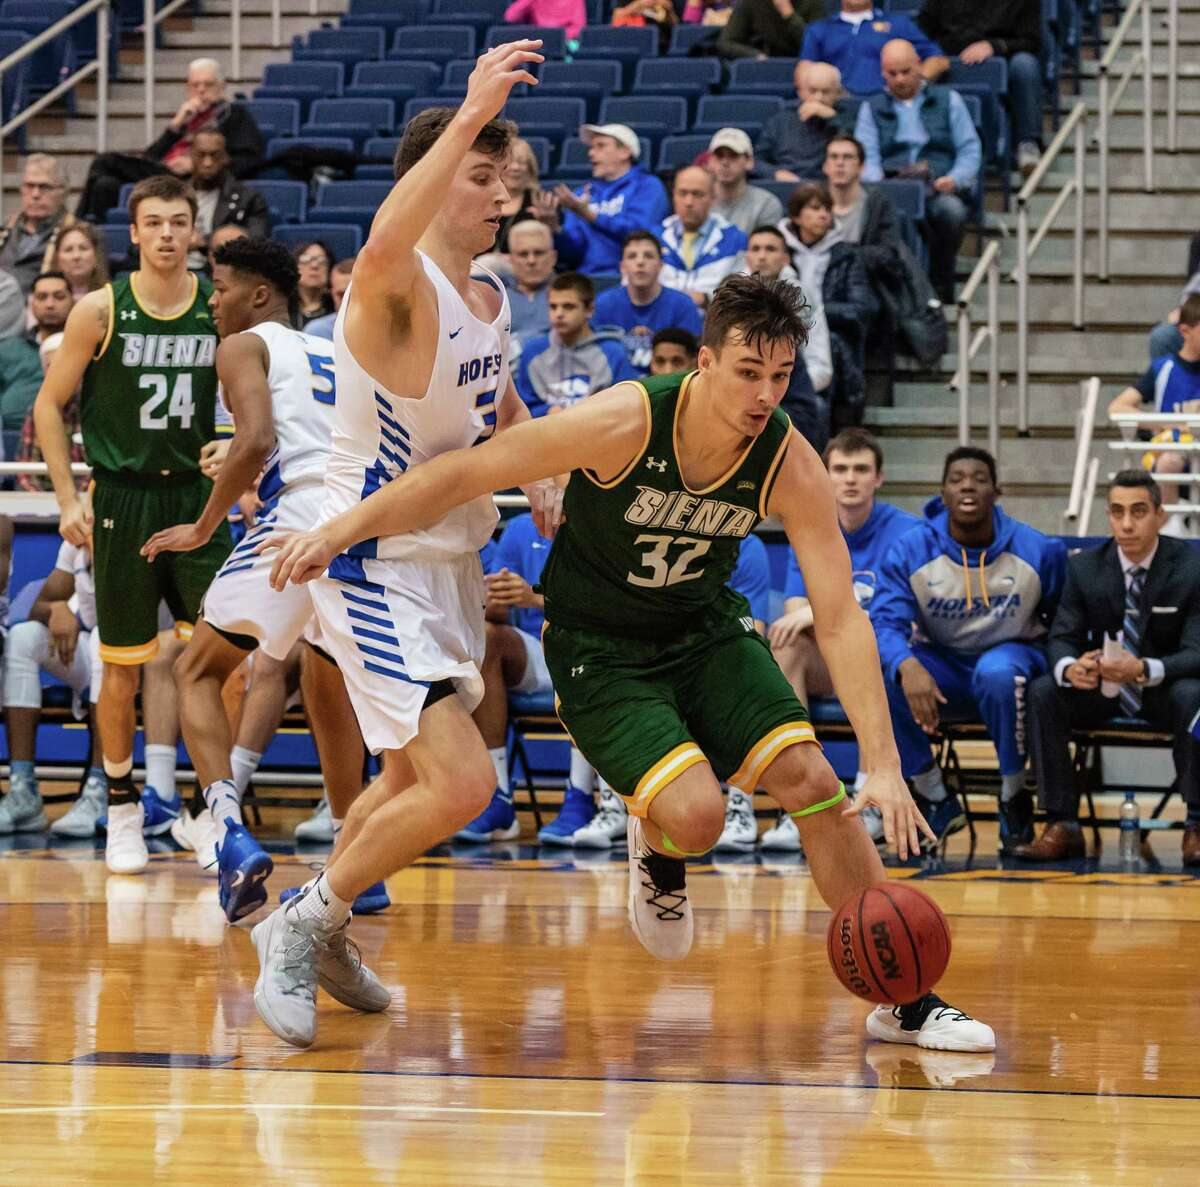 Siena forward Evan Fisher (32) drives past Hofstra forward Dan Dwyer (30) during the first half of the Siena at Hofstra men's basketball game on Wednesday, Nov. 28, 2018.